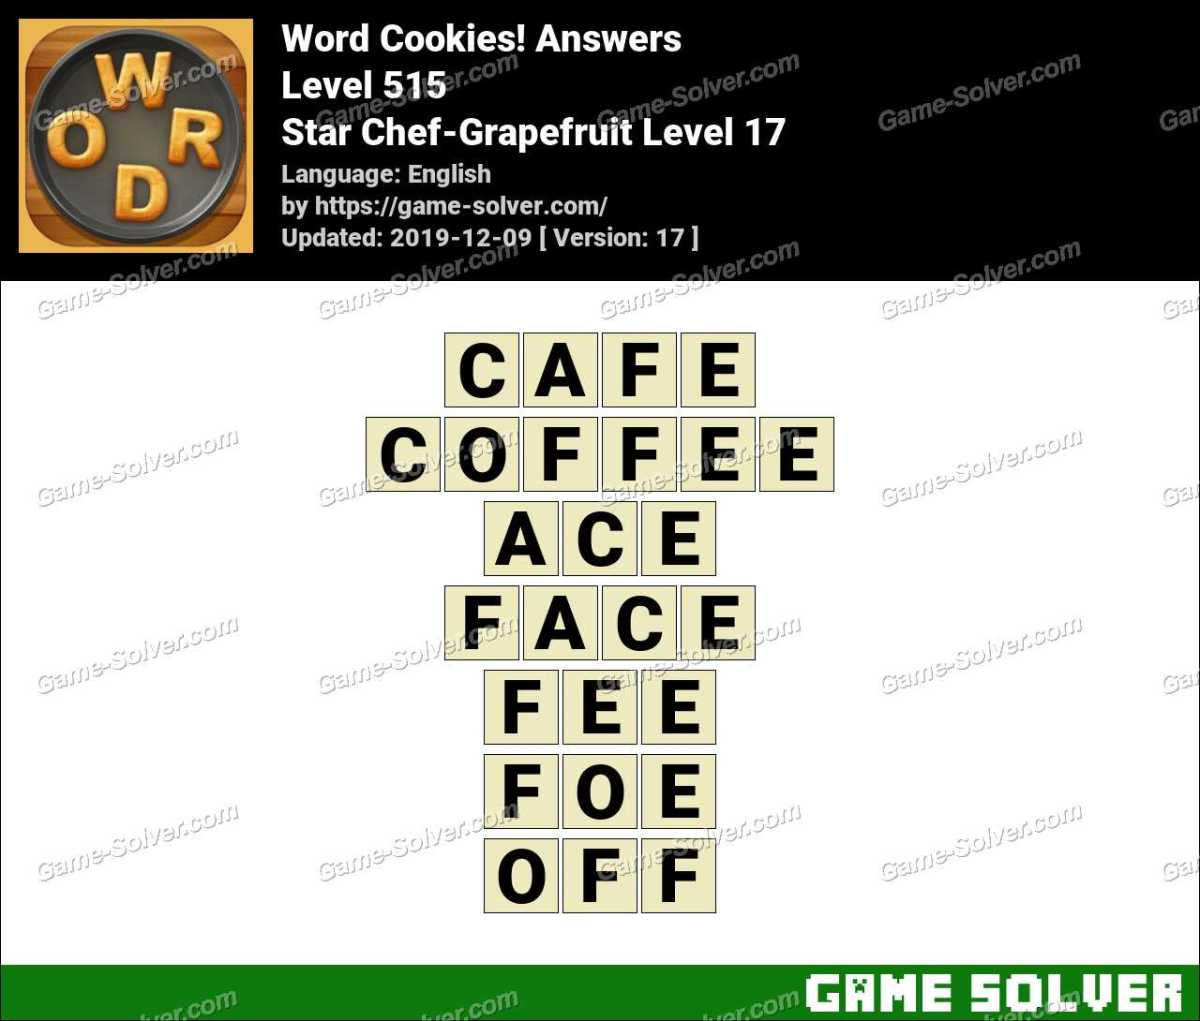 Word Cookies Star Chef-Grapefruit Level 17 Answers